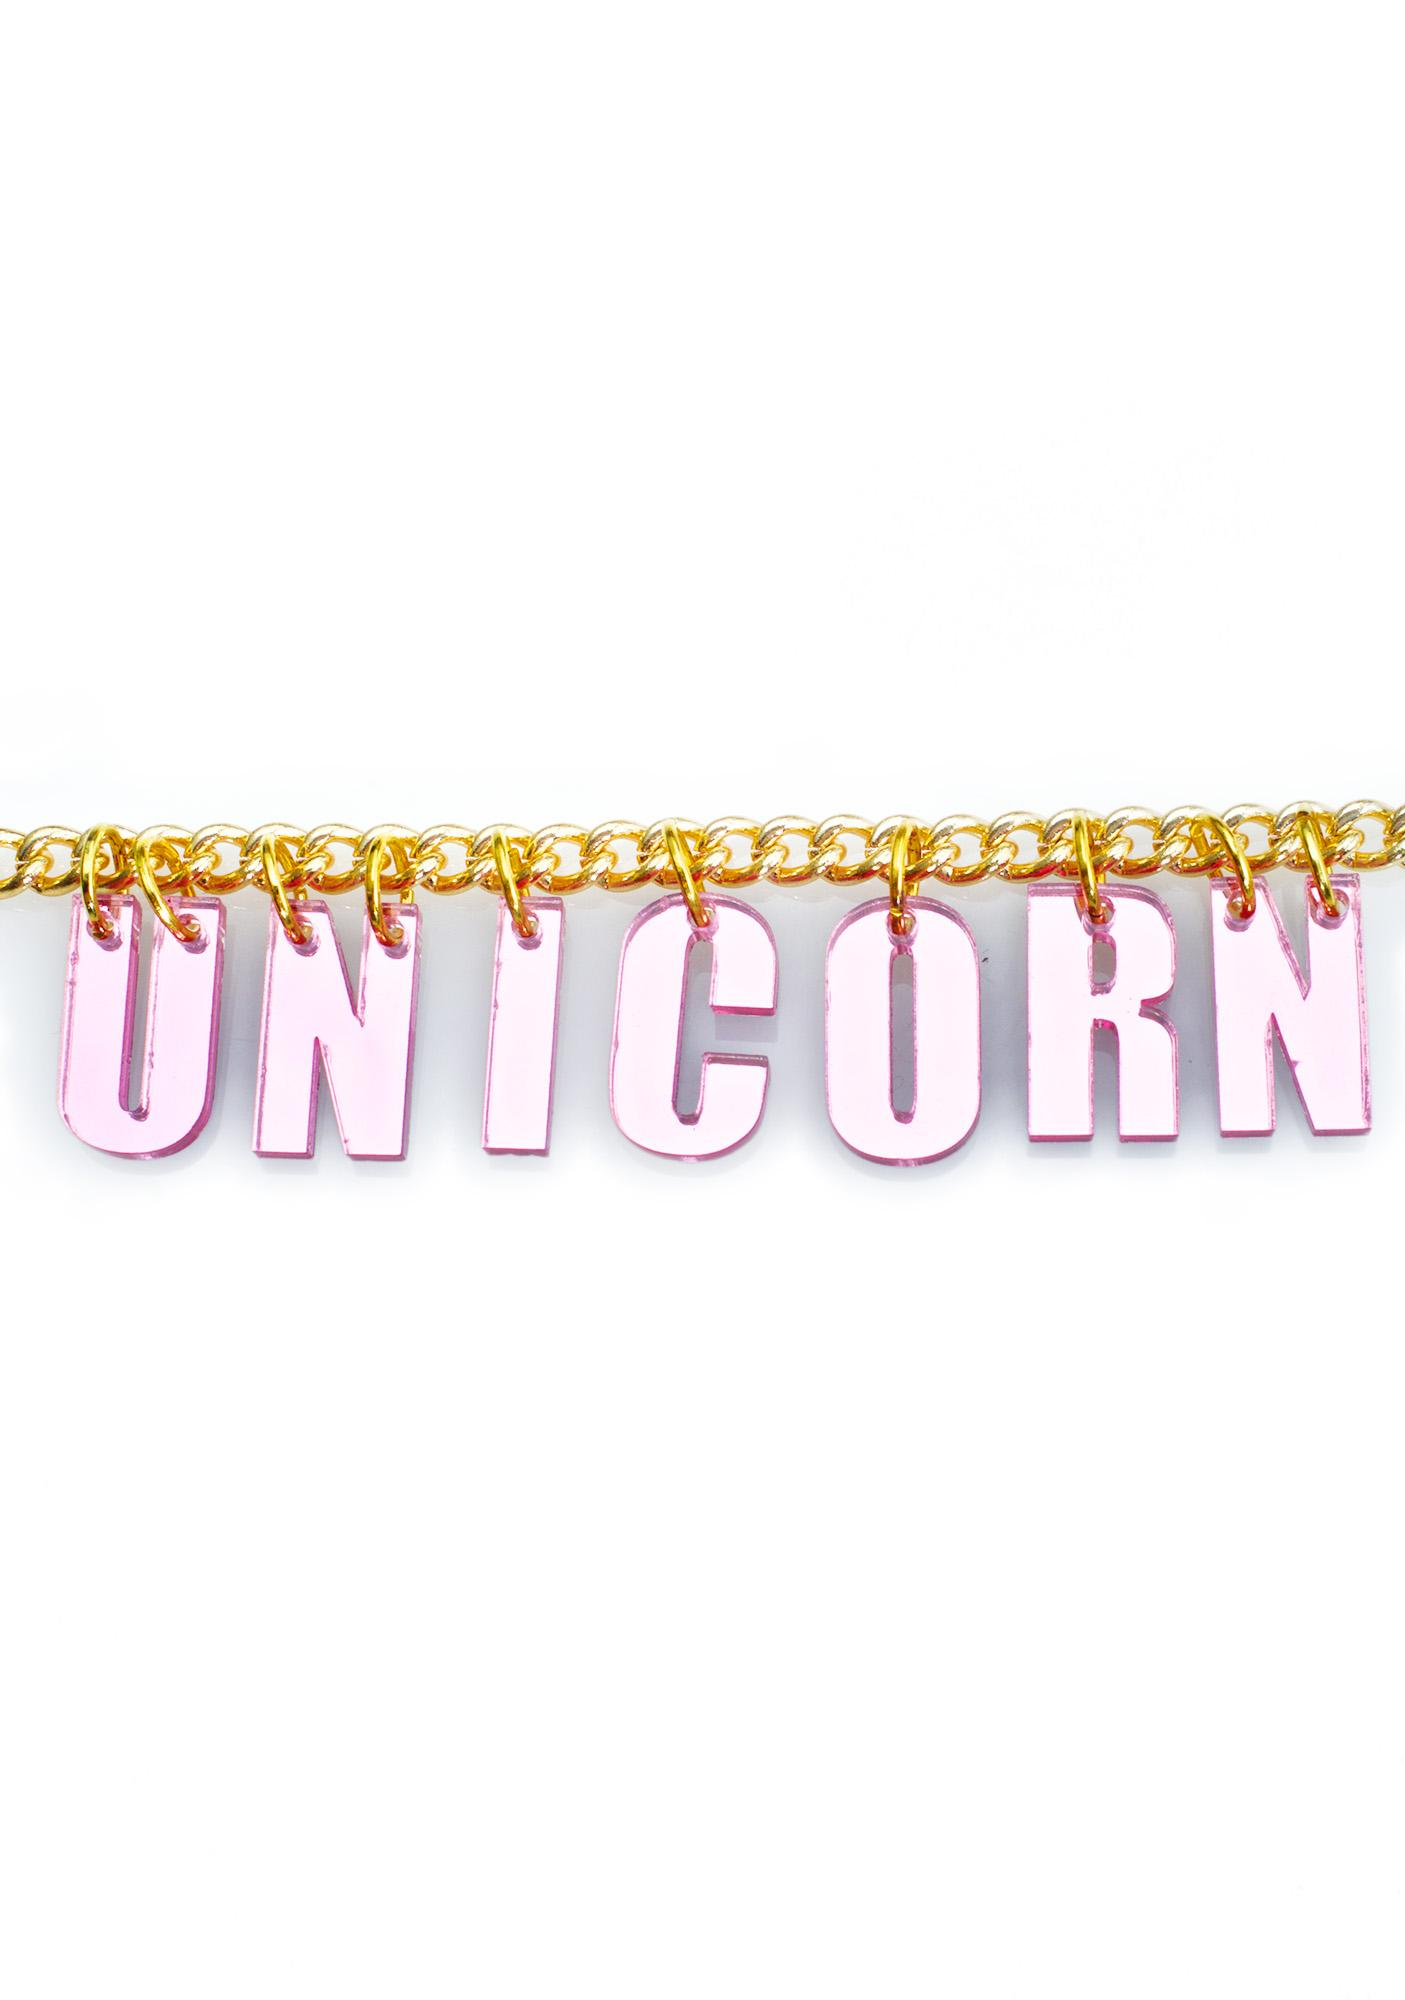 Trixy Starr Unicorn Necklace